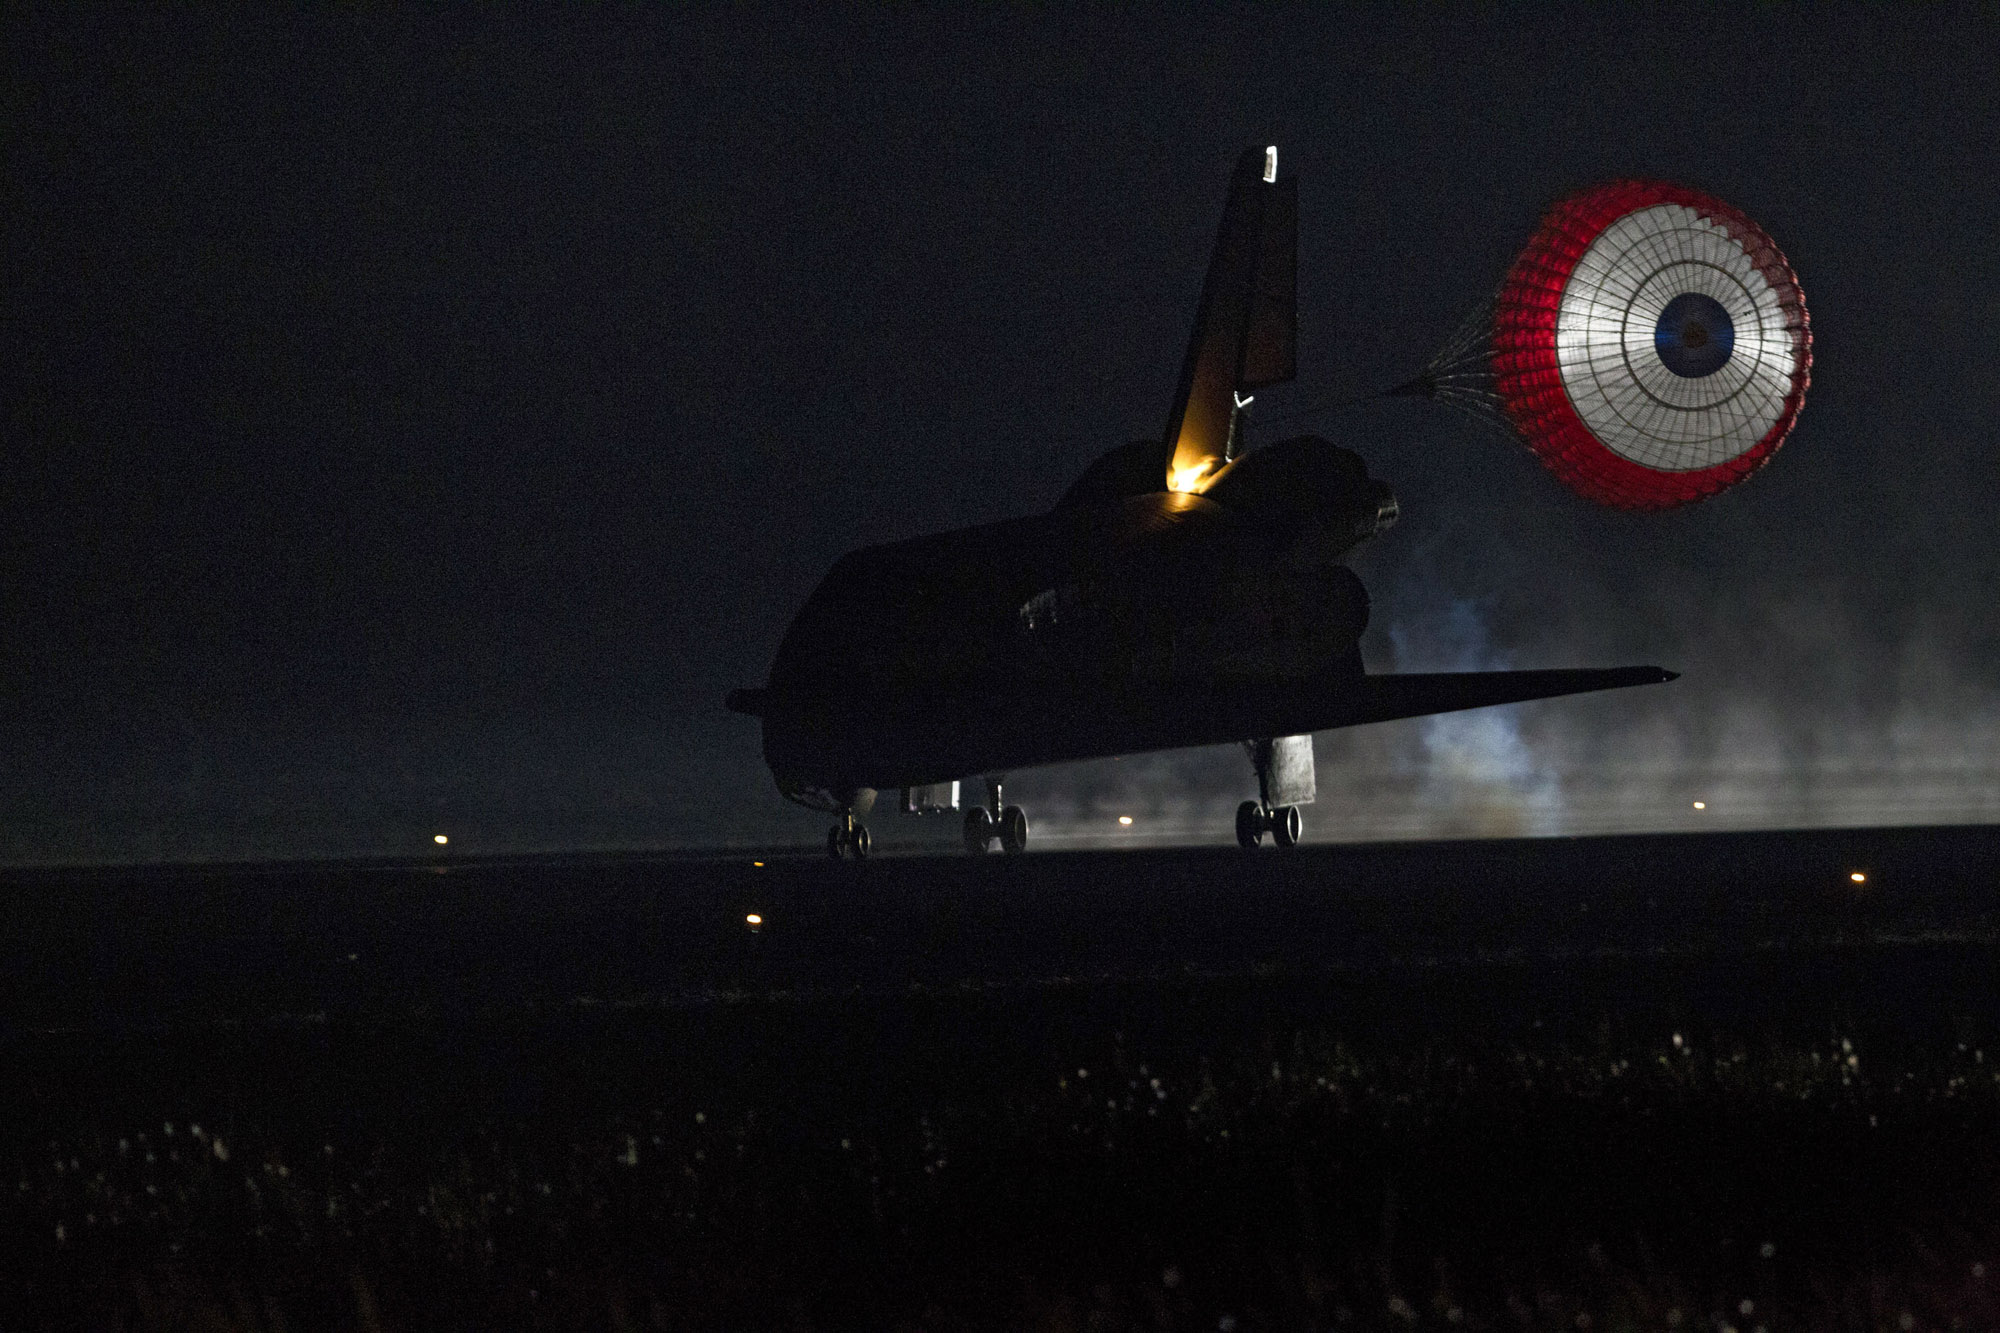 Space Shuttle Endeavour Returns to Earth After Final Mission